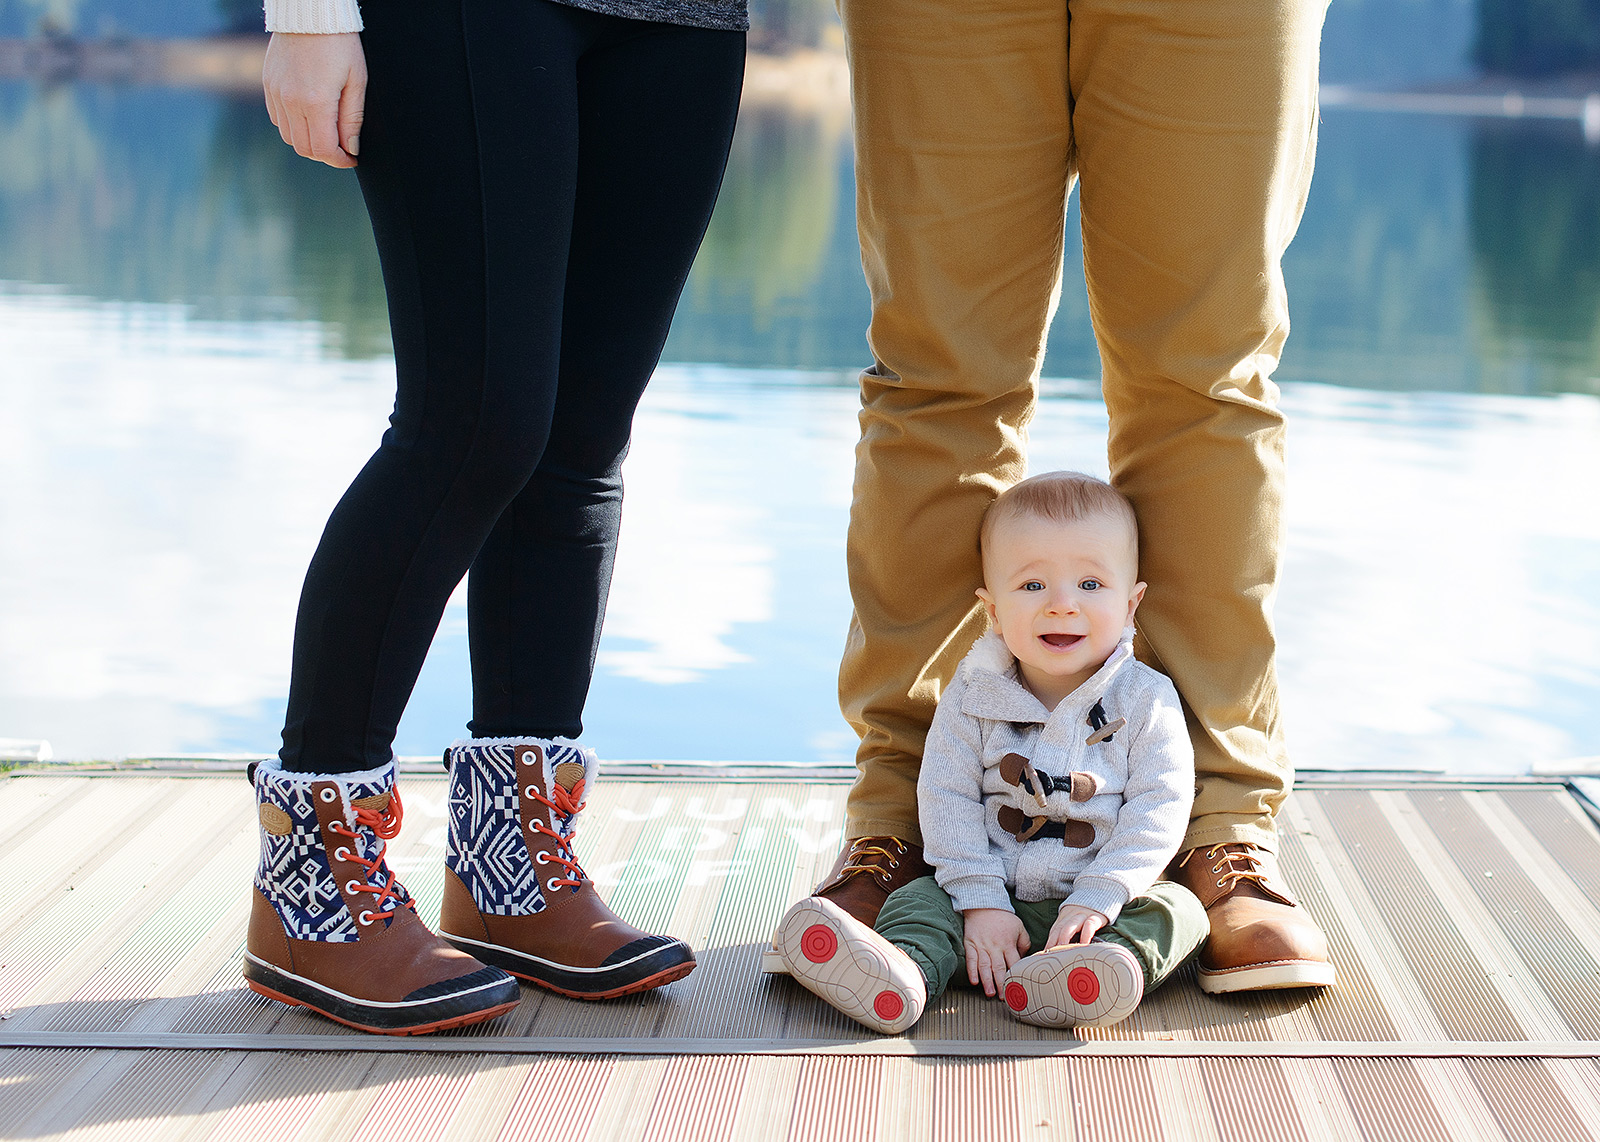 Baby Boy Wearing Boots by Parents Feet by Pollock Pines Lake